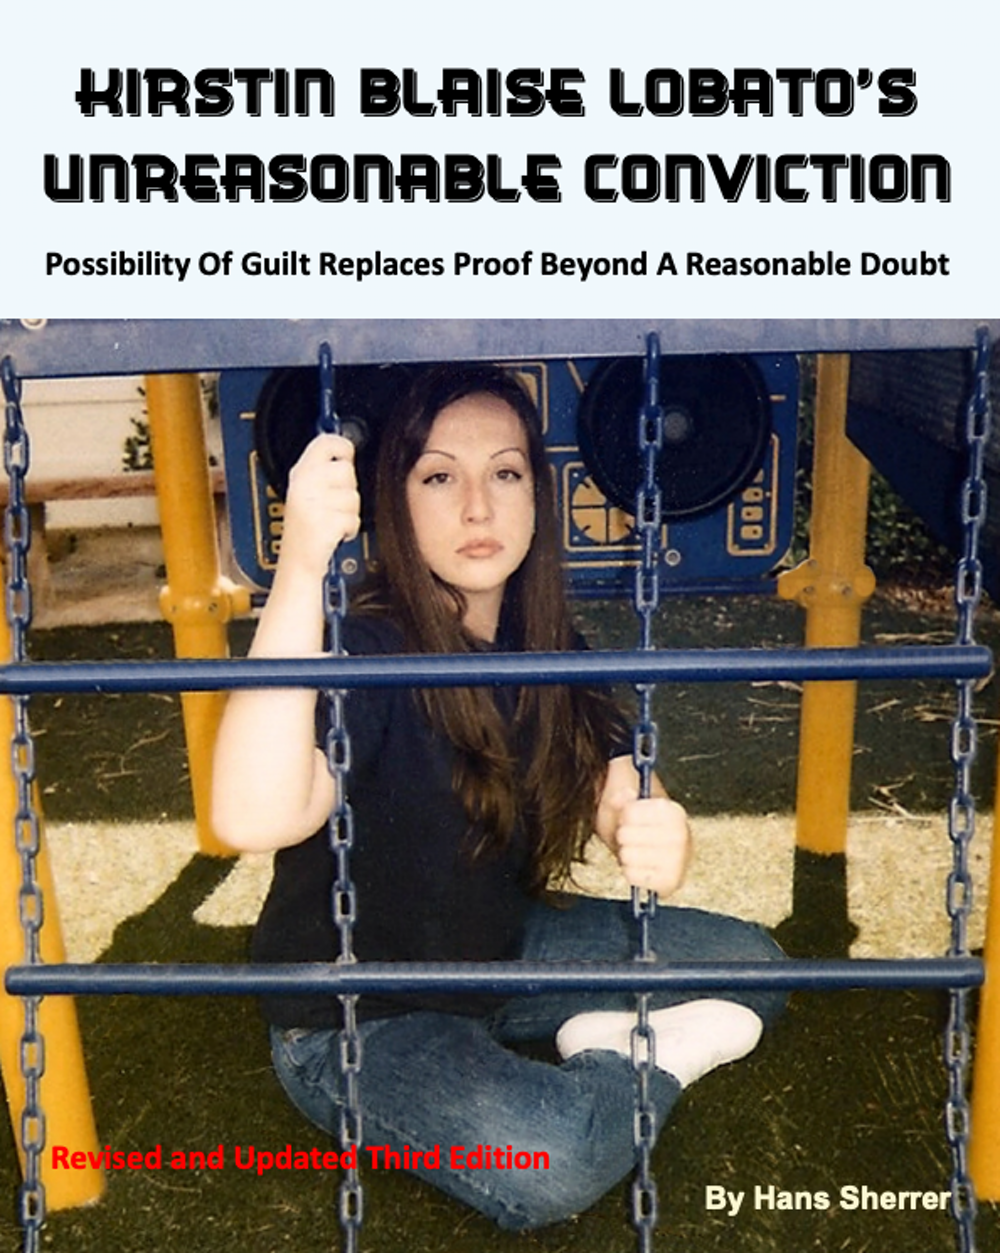 Kirstin Blaise Lobato's Unreasonable Conviction, by Hans Sherrer.  Justice Denied